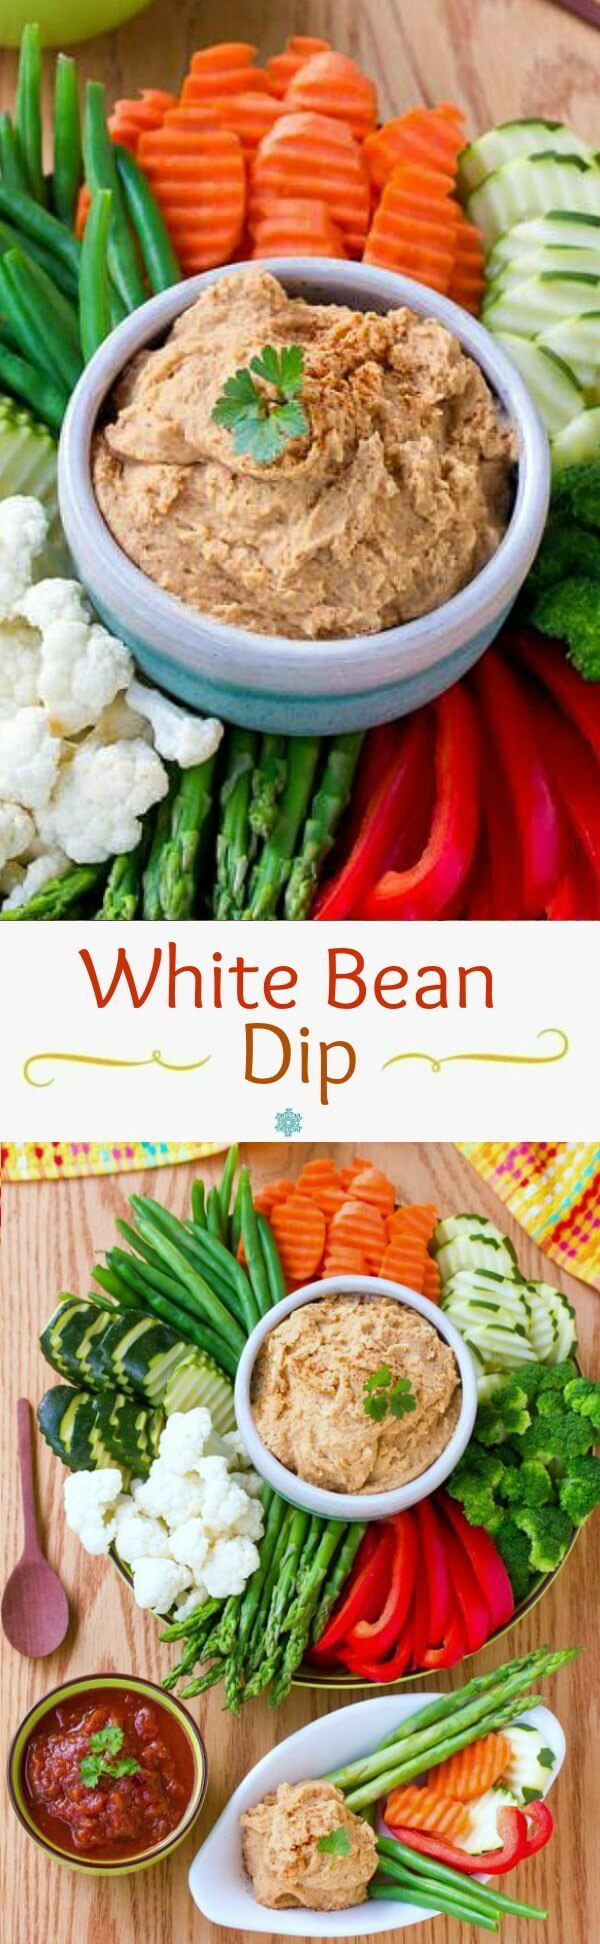 White Bean Dip is here to help with healthy noshing. Getready for the next get-together that is just around the corner. Fast & tasty!